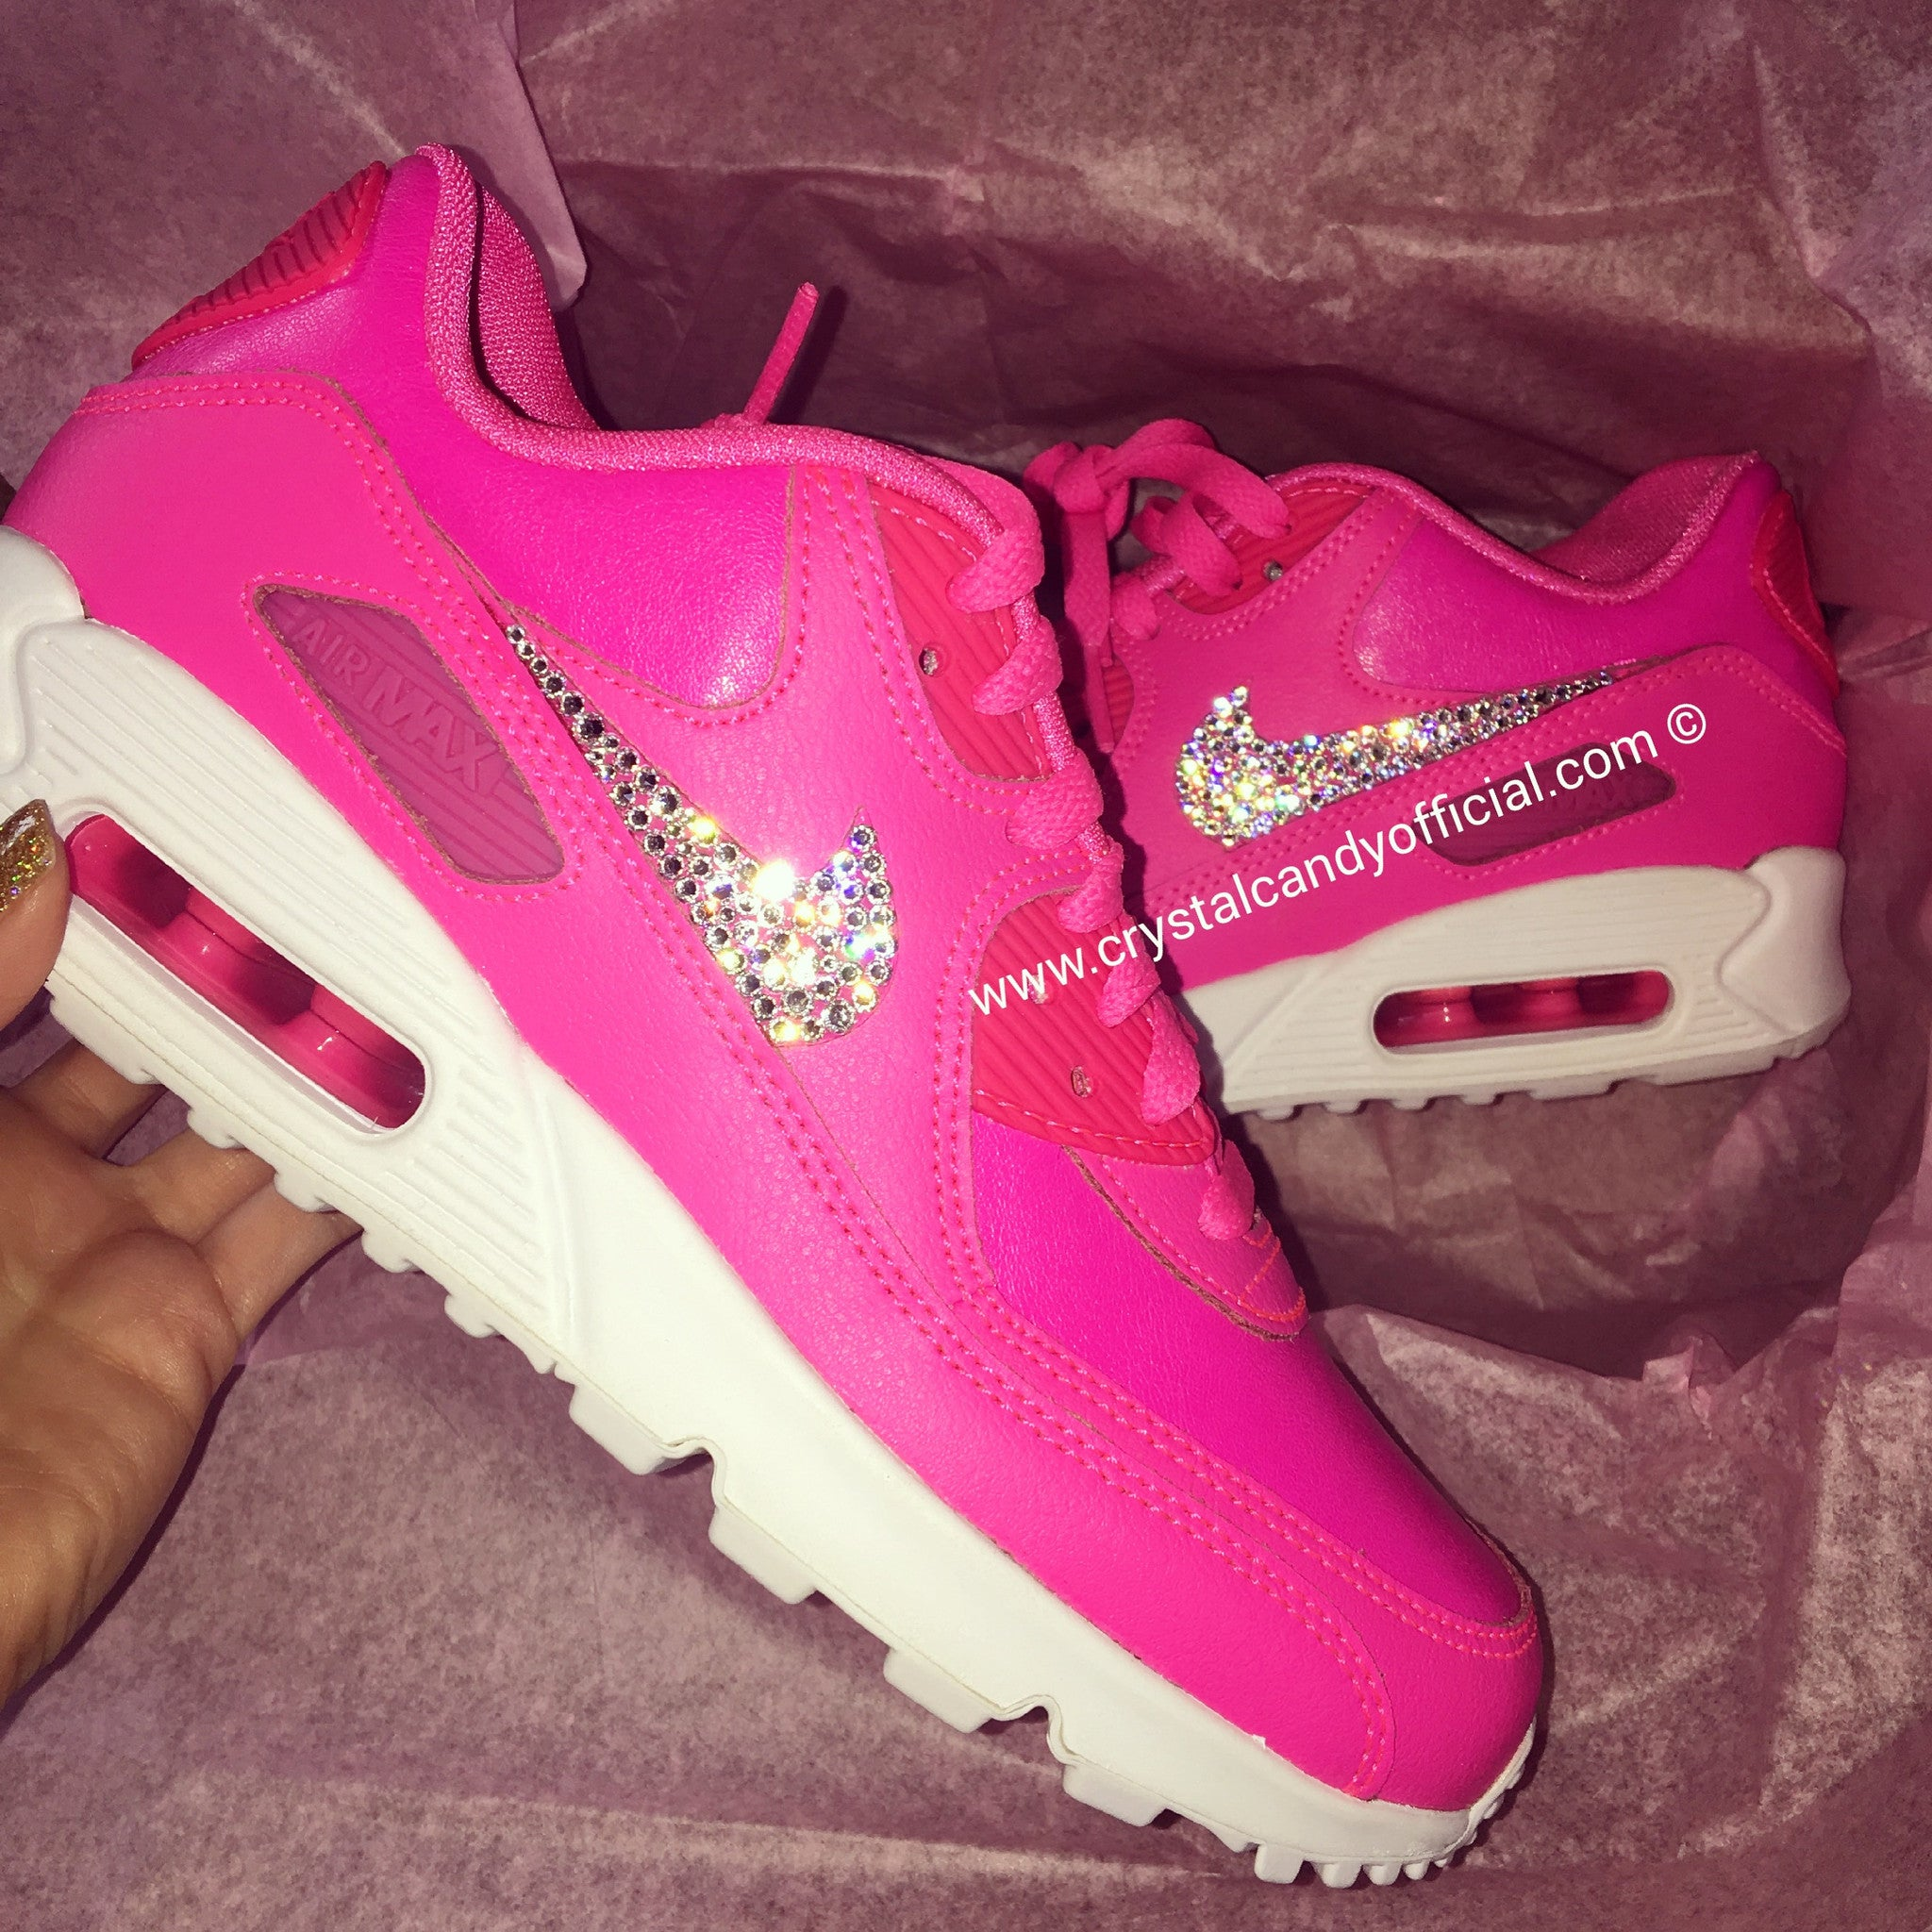 77eca712cb7 Crystal Nike Air Max 90's in Barbie Pink